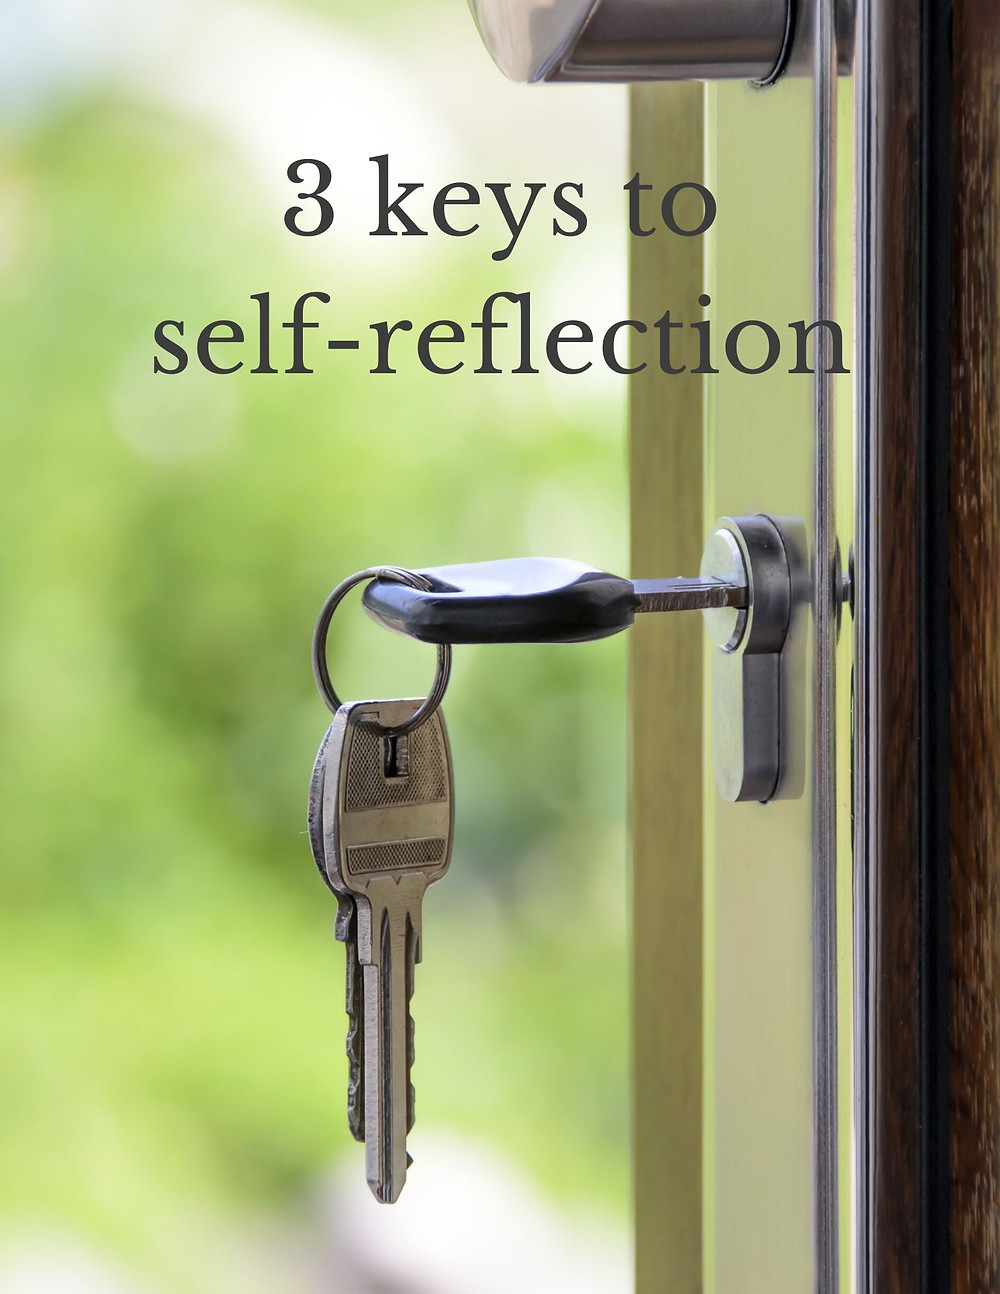 3 keys to self-reflection